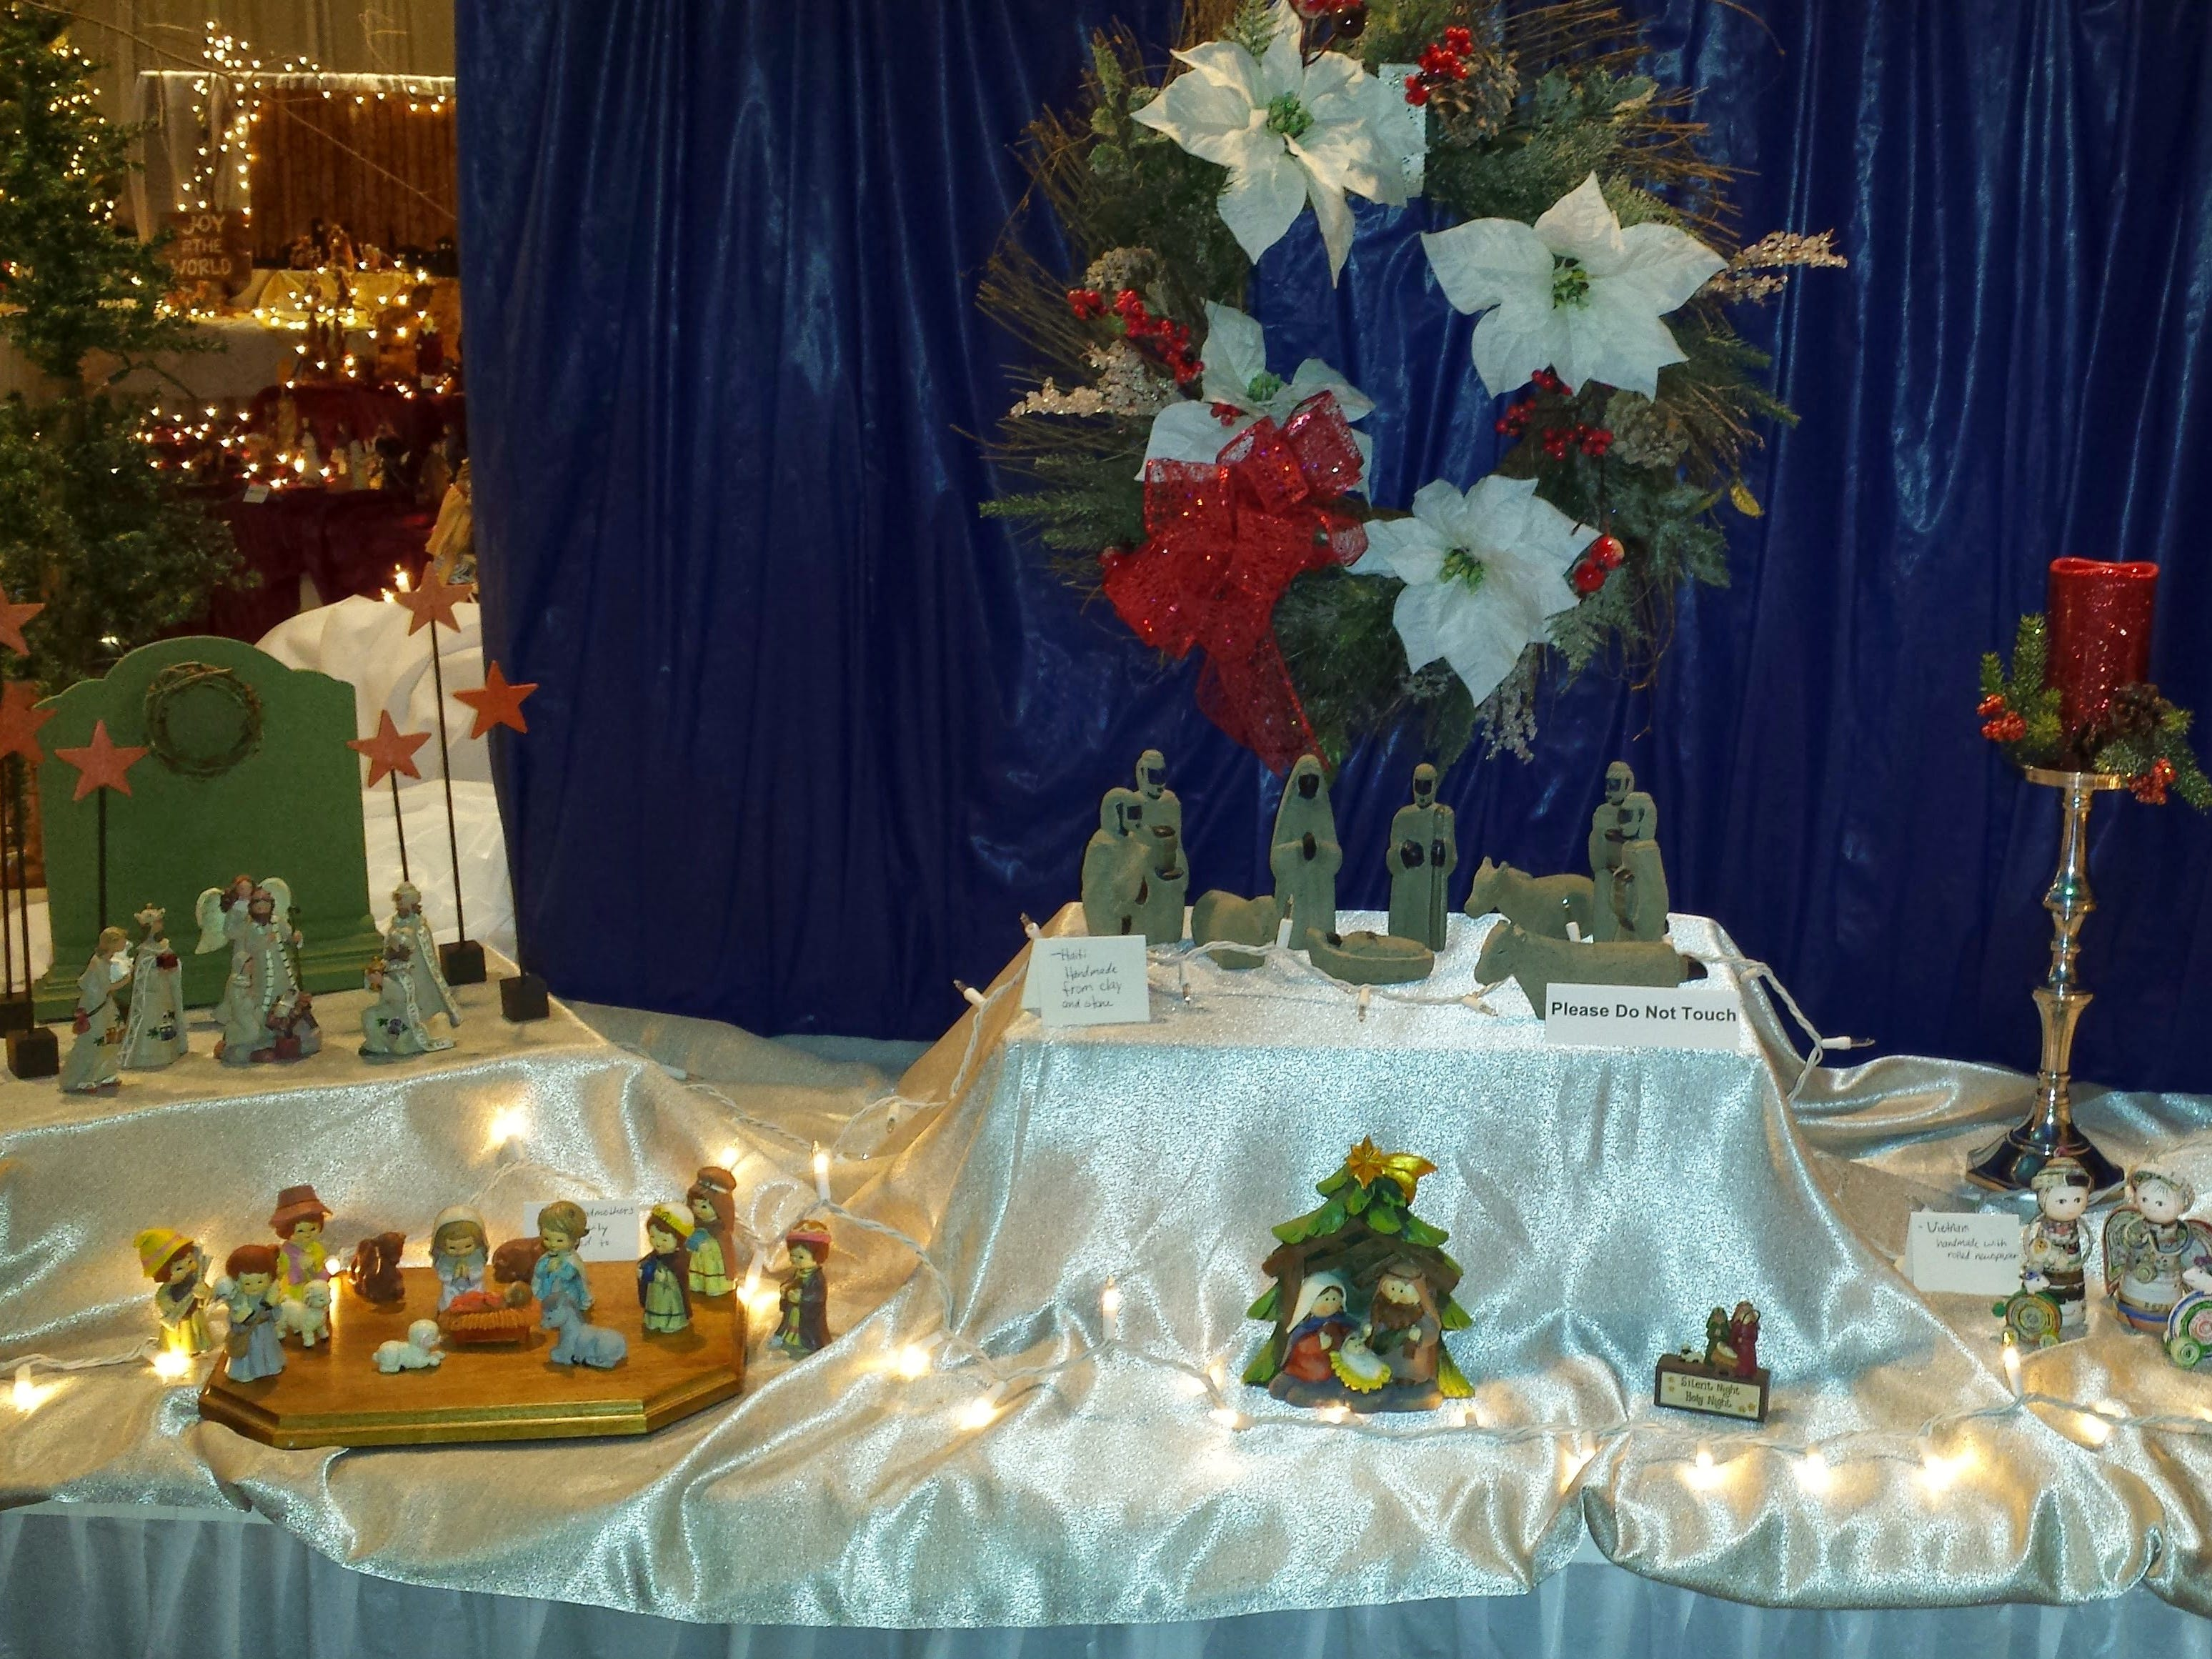 More than 300 nativities will be on display at The Church of Jesus Christ of Latter-day Saints in Morristown Nov. 30 to Dec. 2, 2018.